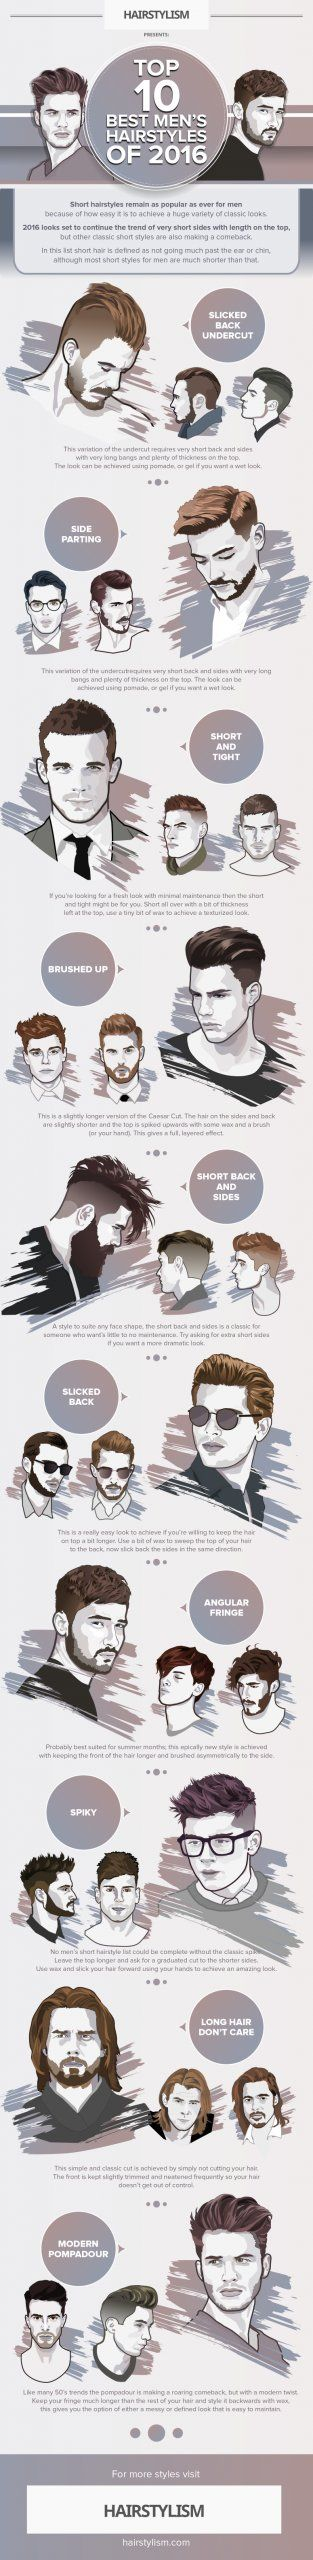 These are the most popular hairstyles for guys right now